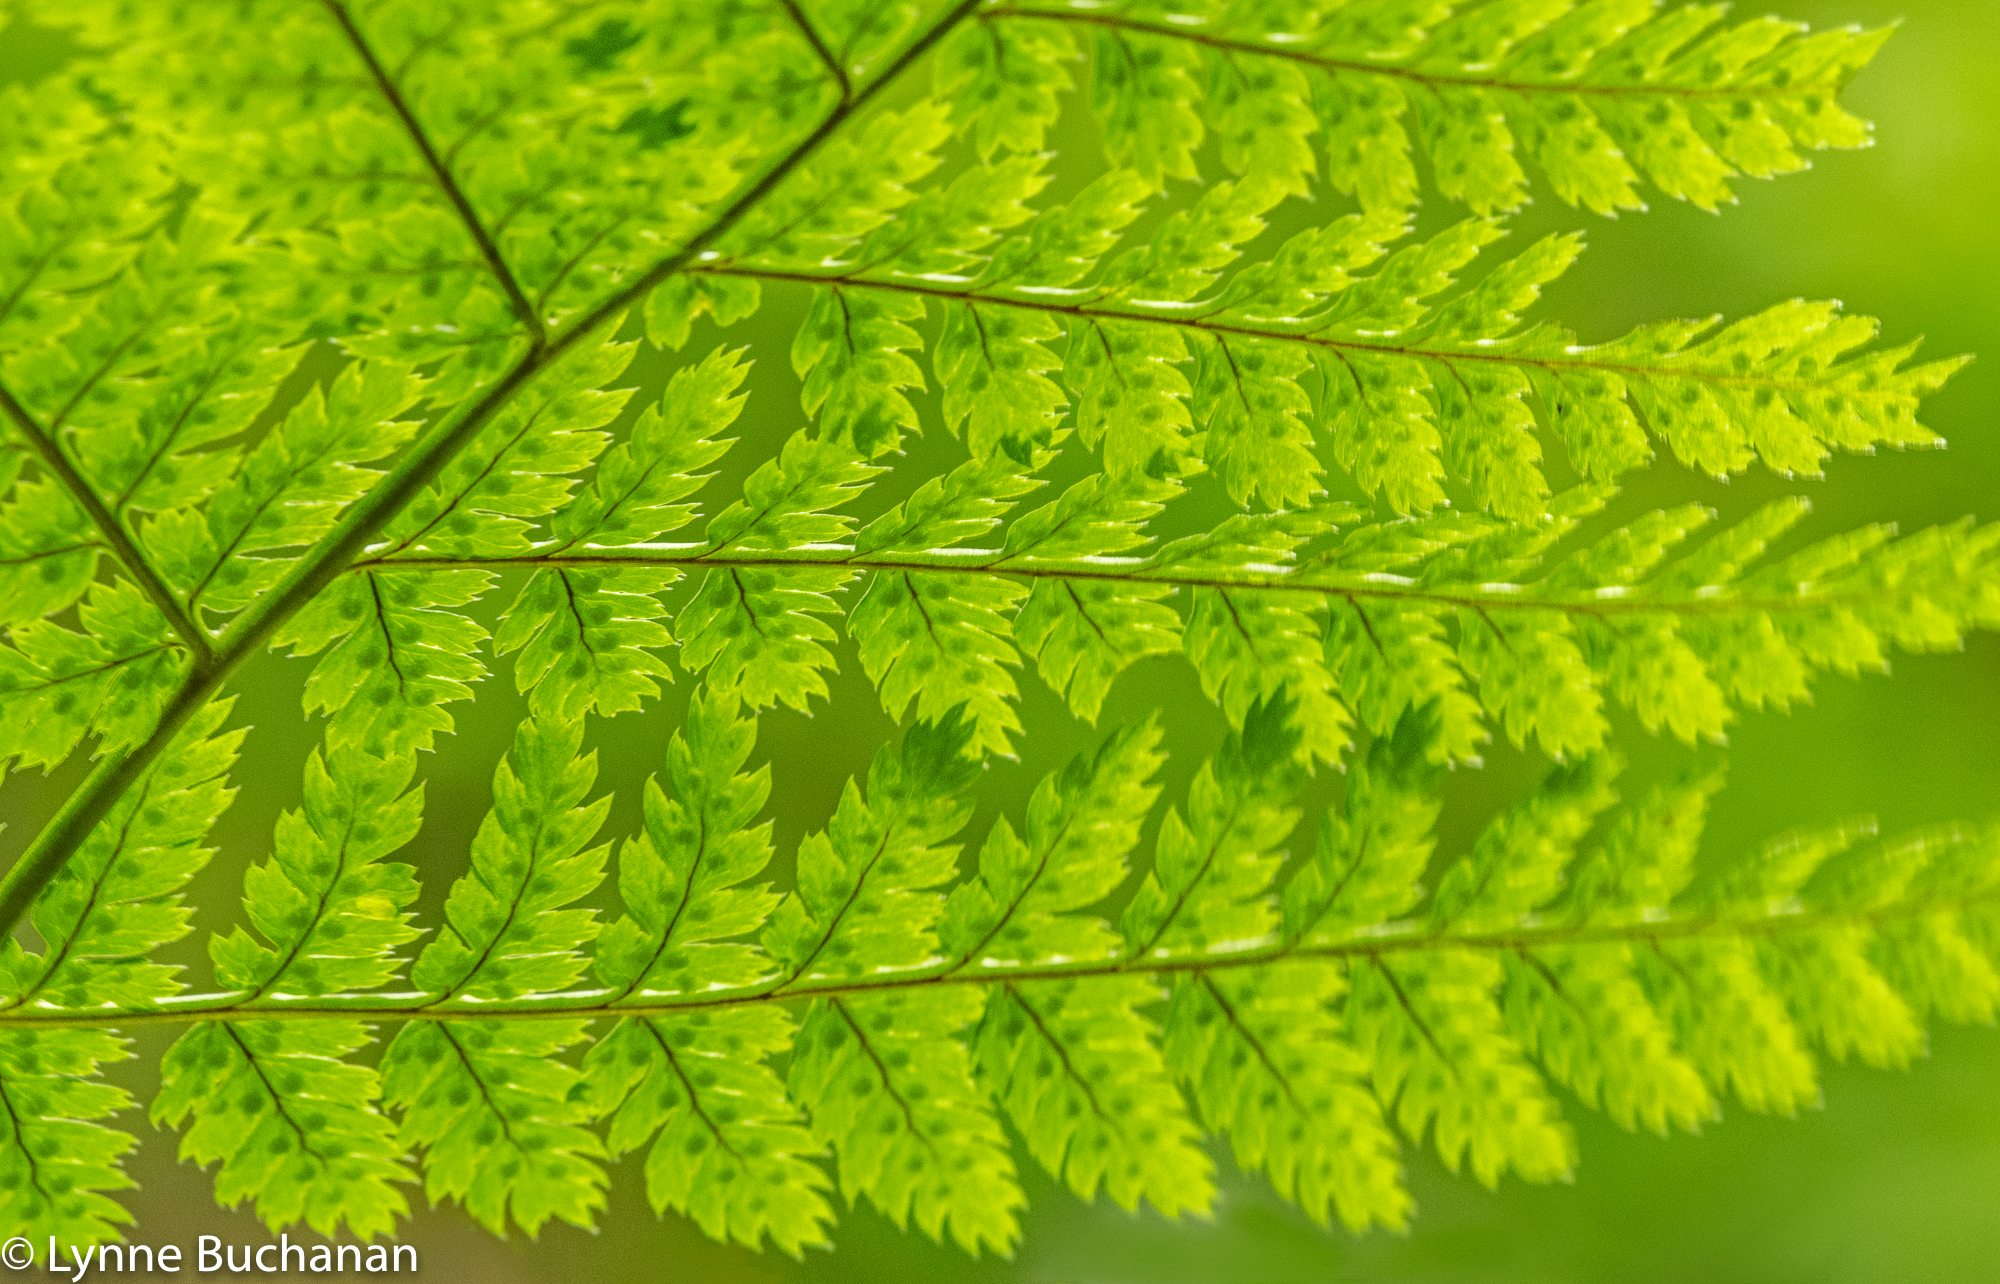 Underside of Fern with Kidney Shaped Seeds3194.jpg